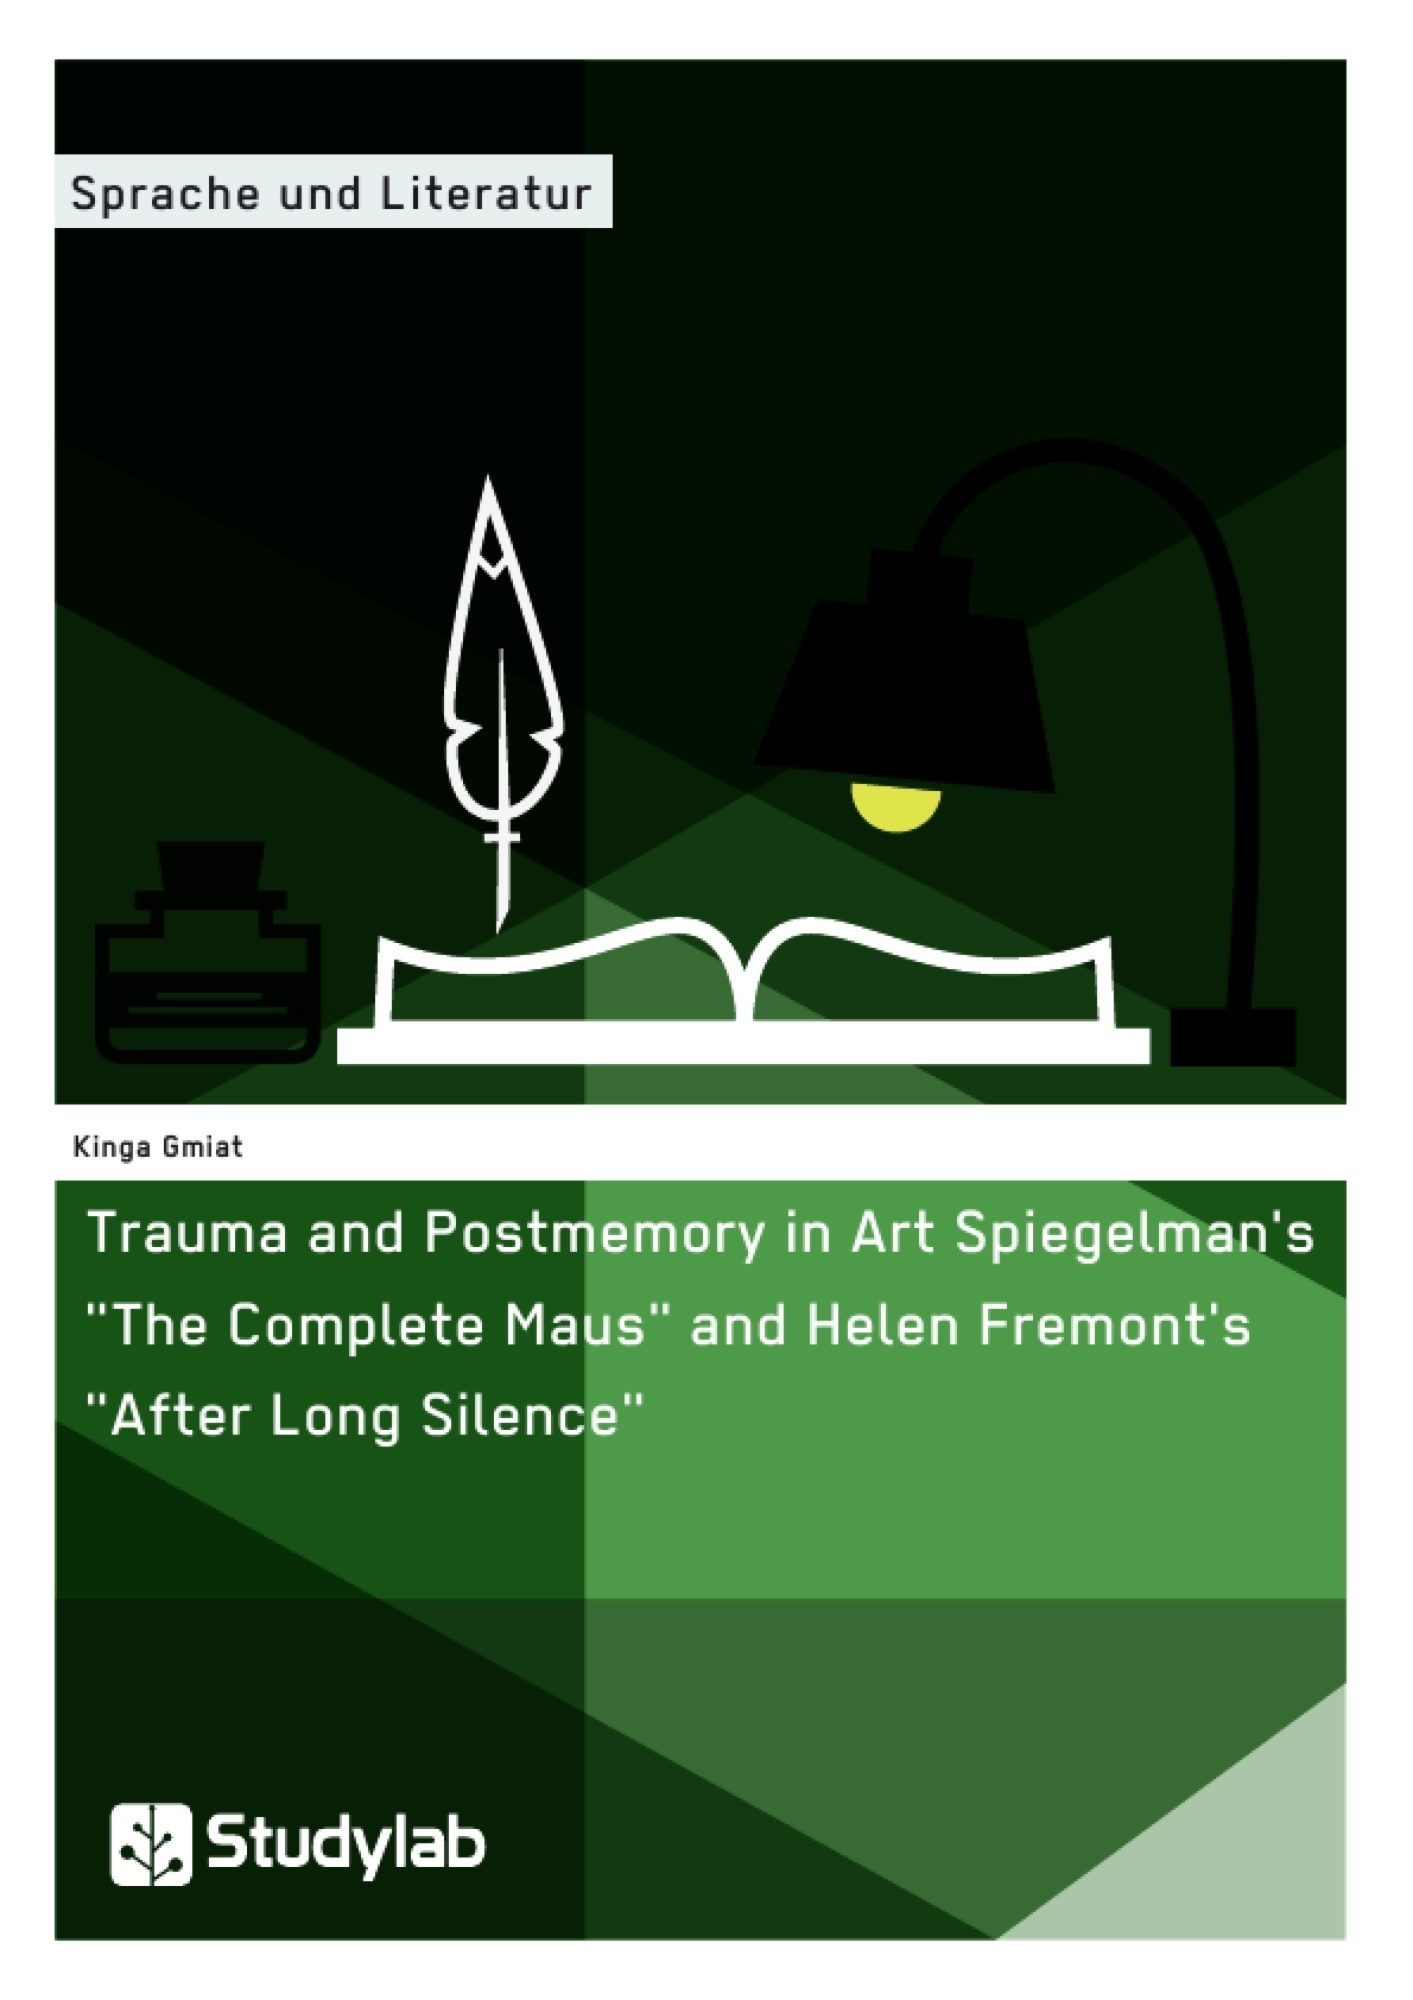 """Title: Trauma and Postmemory in Art Spiegelman's """"The Complete Maus"""" and Helen Fremont's """"After Long Silence"""""""